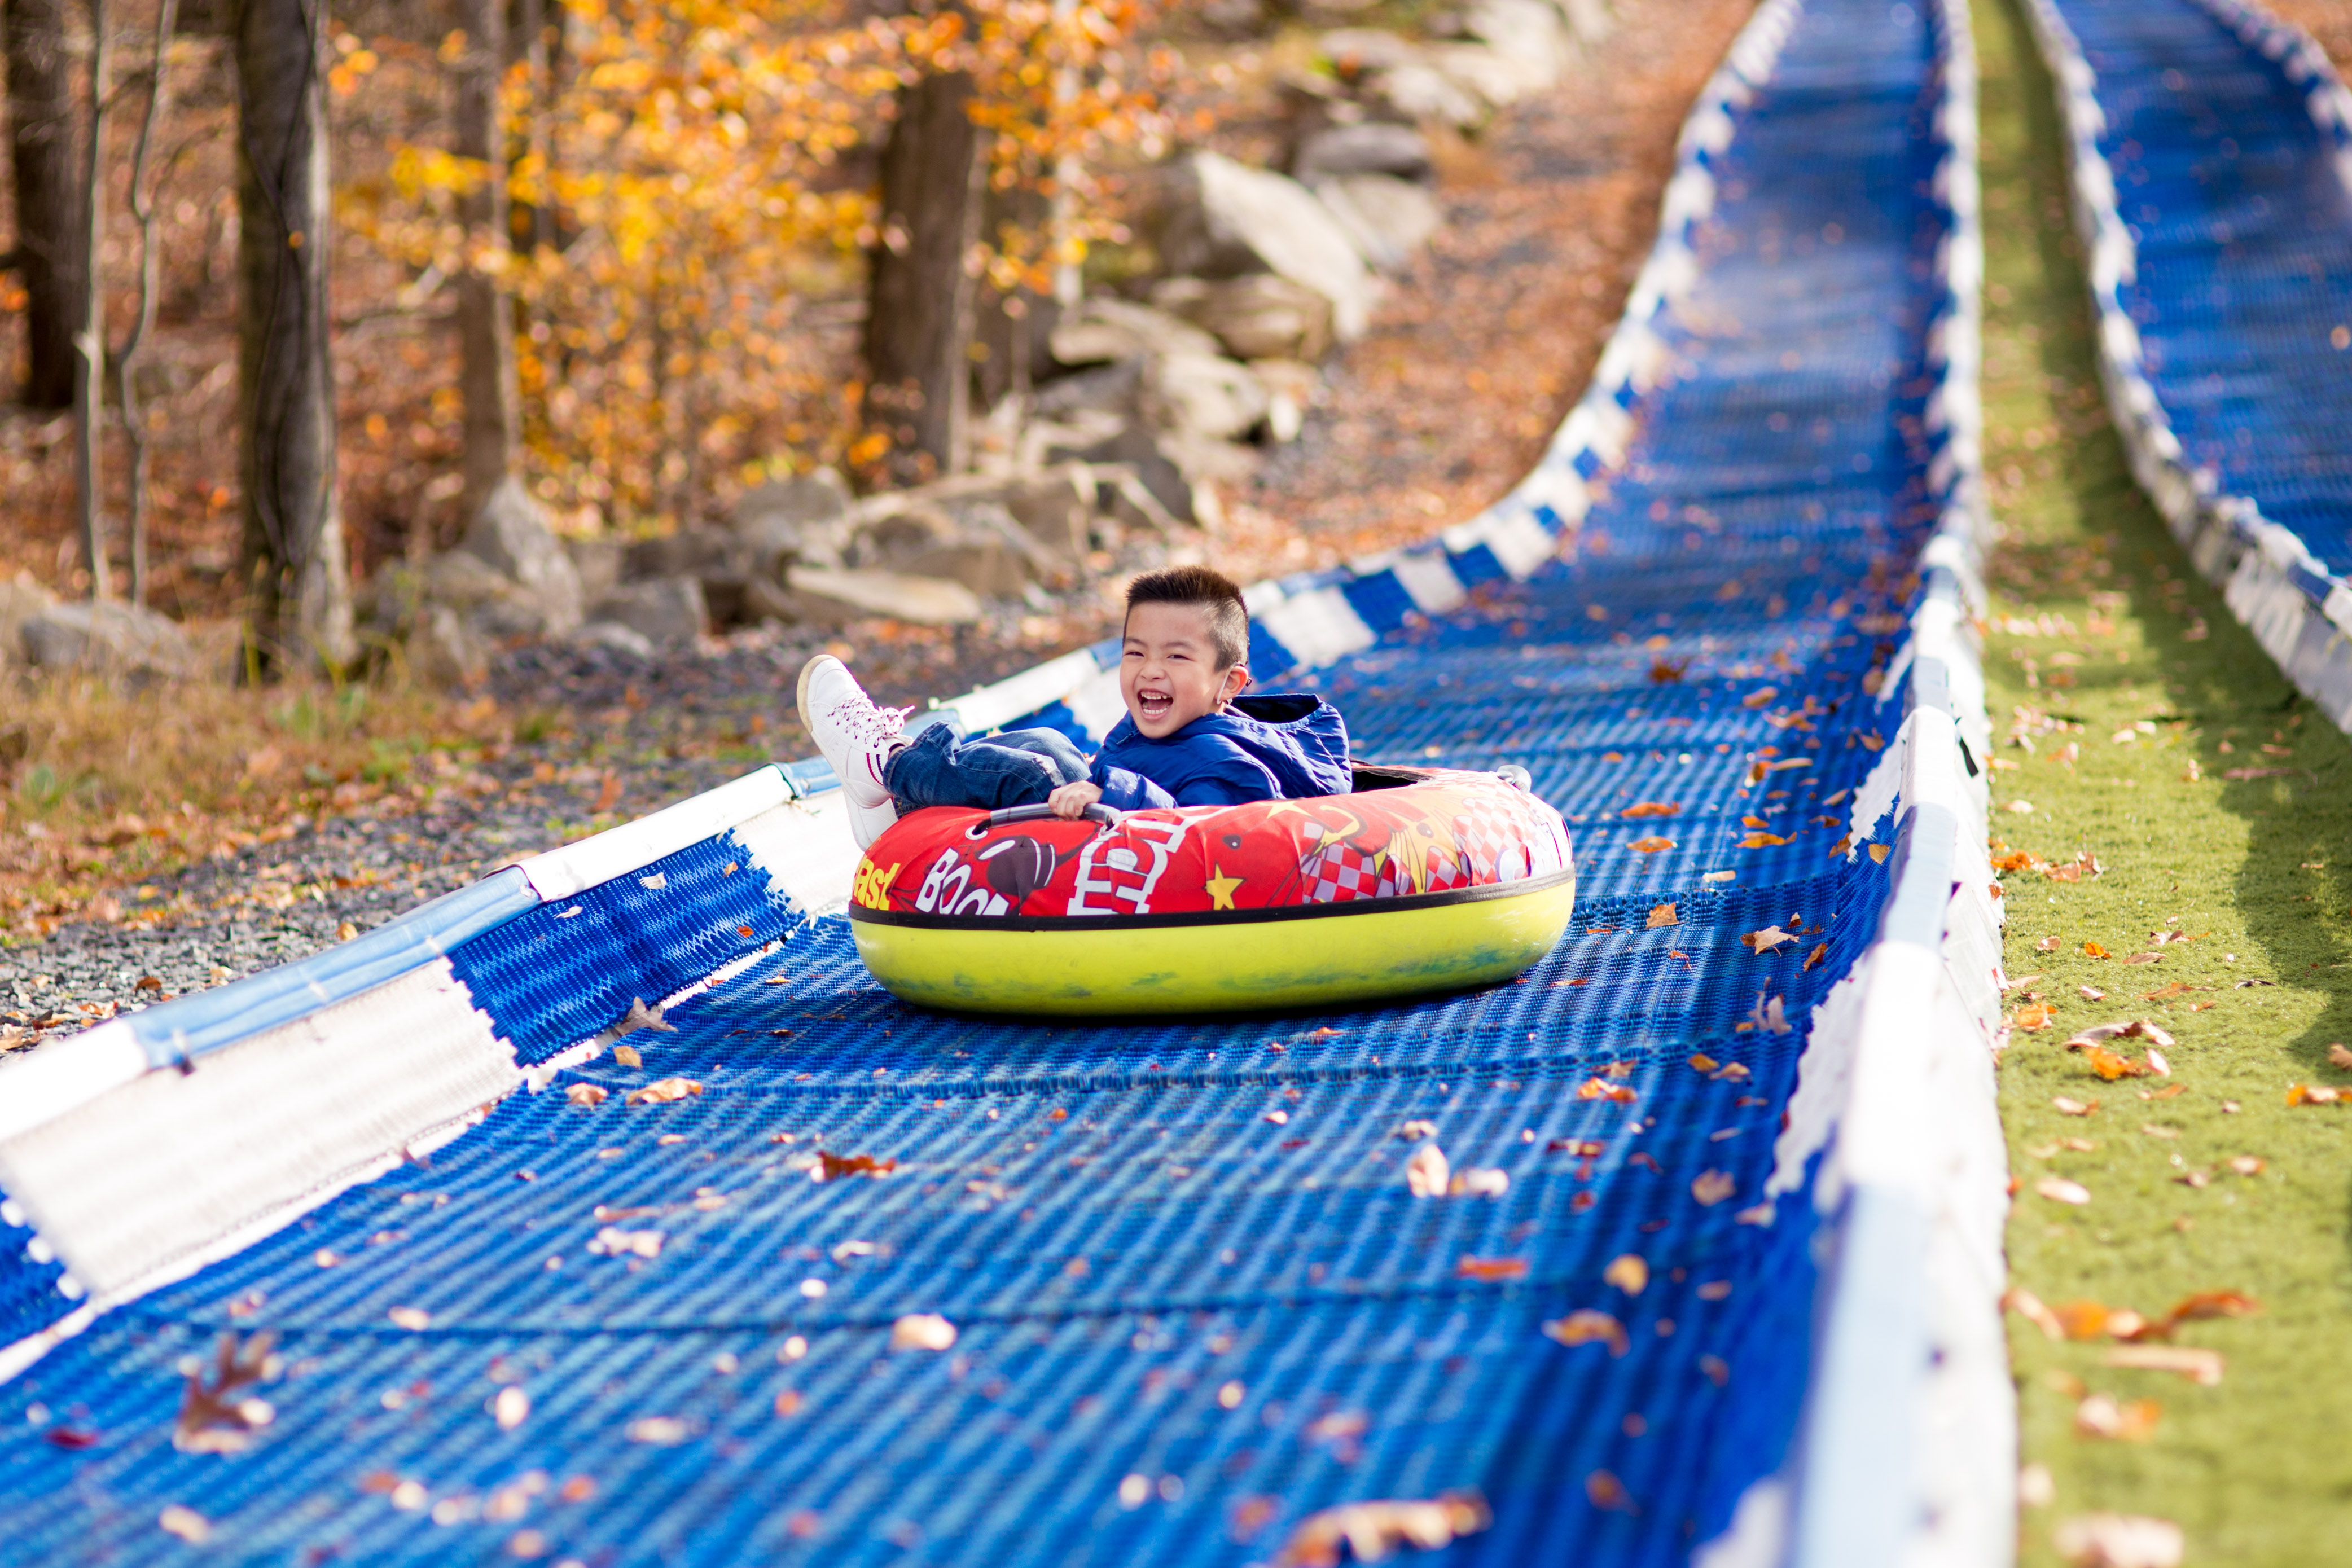 All Inclusive Activities At Rocking Horse Ranch